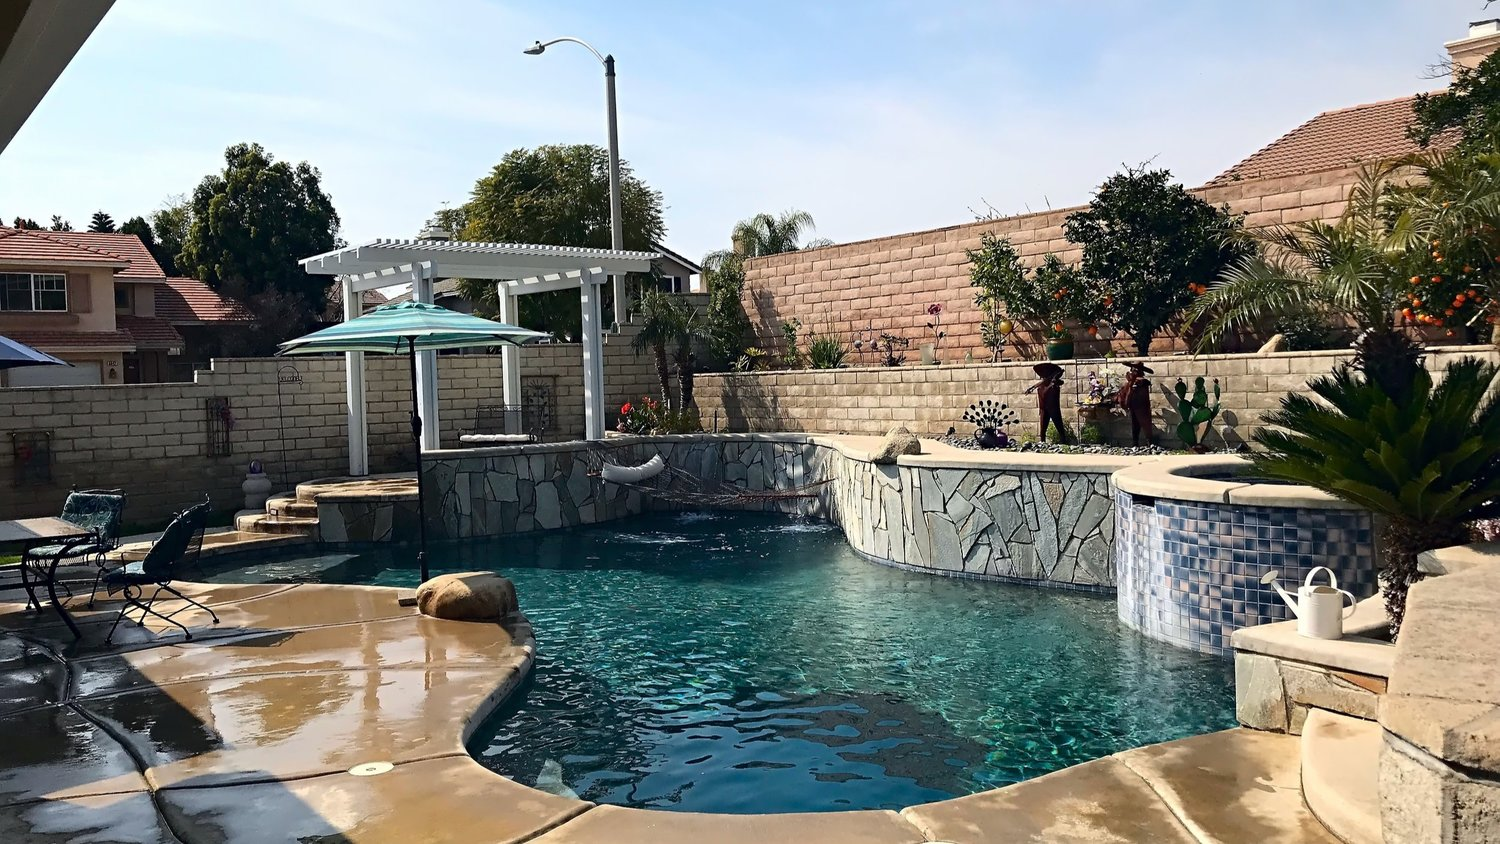 Swimming Pool Design with an Upslope — Bogner Pools